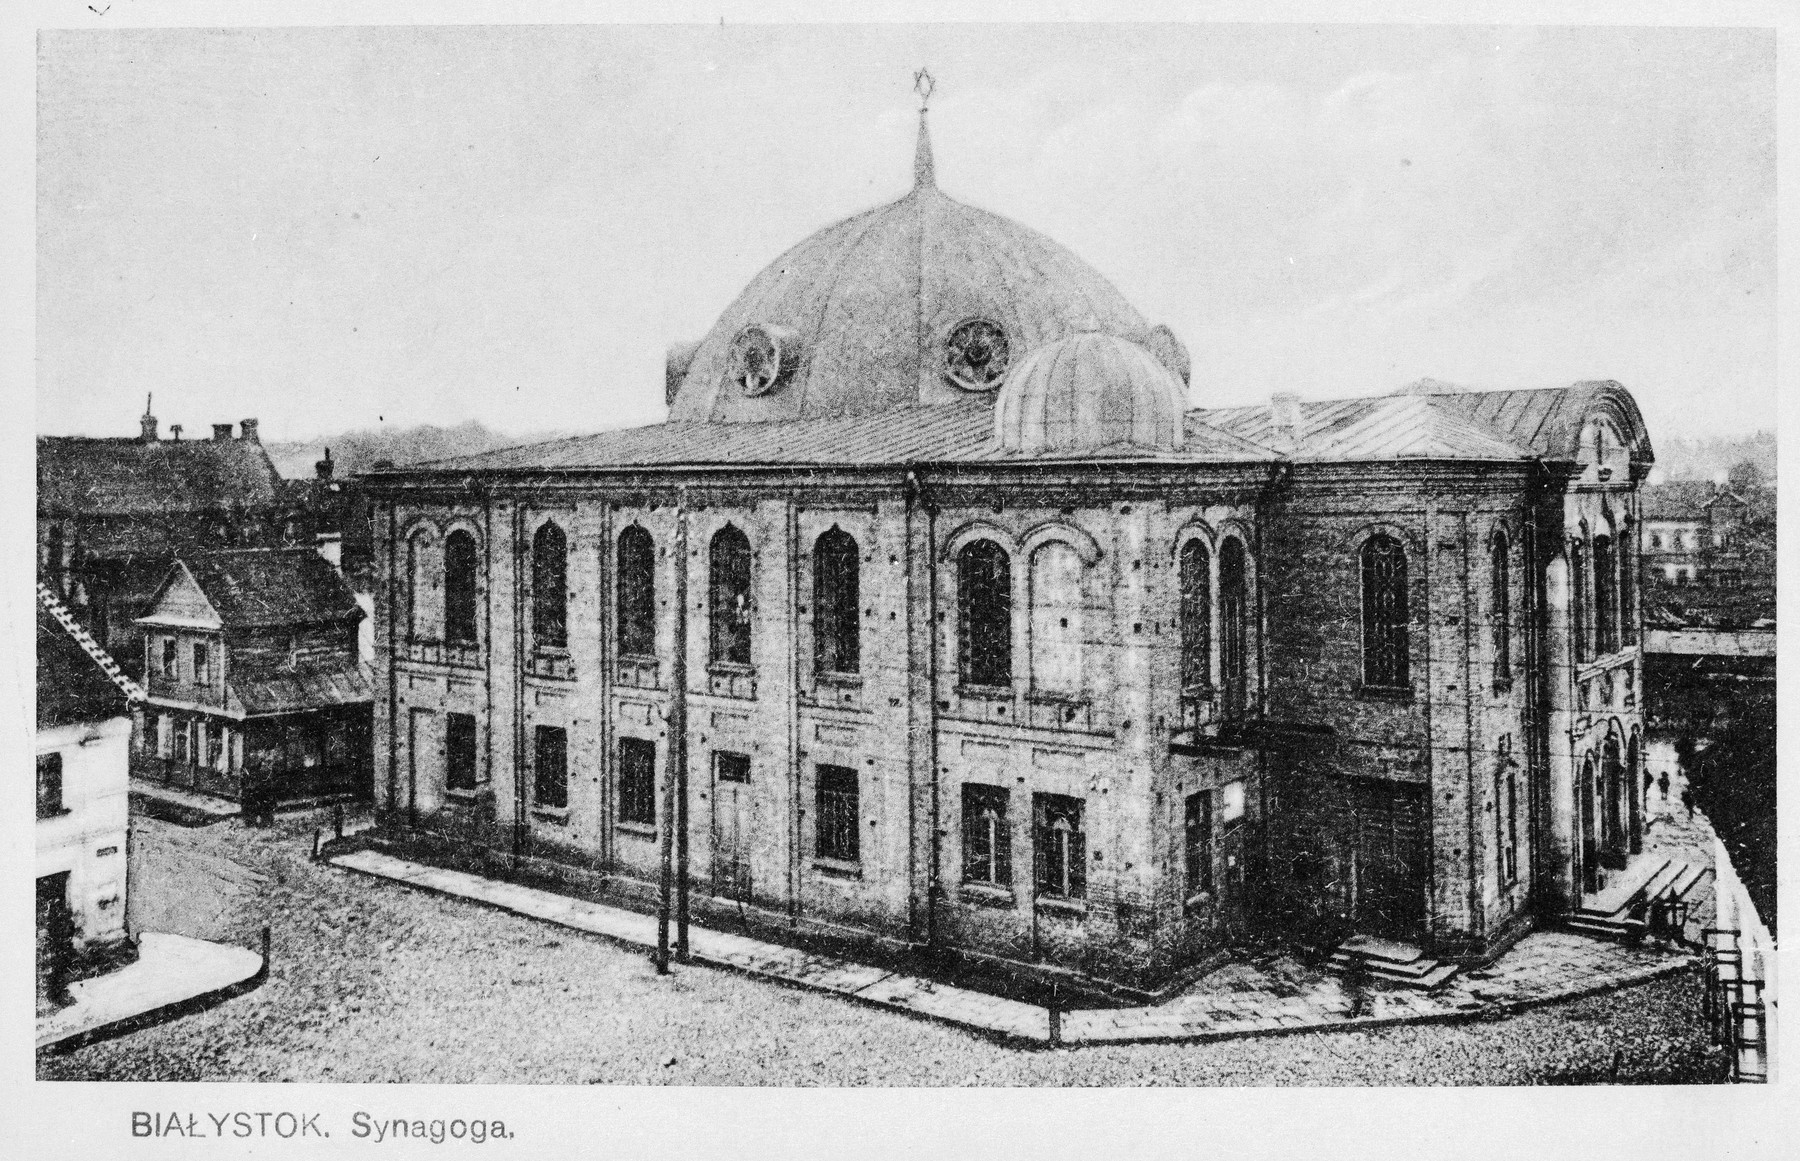 Exterior view of the synagogue in Bialystok.